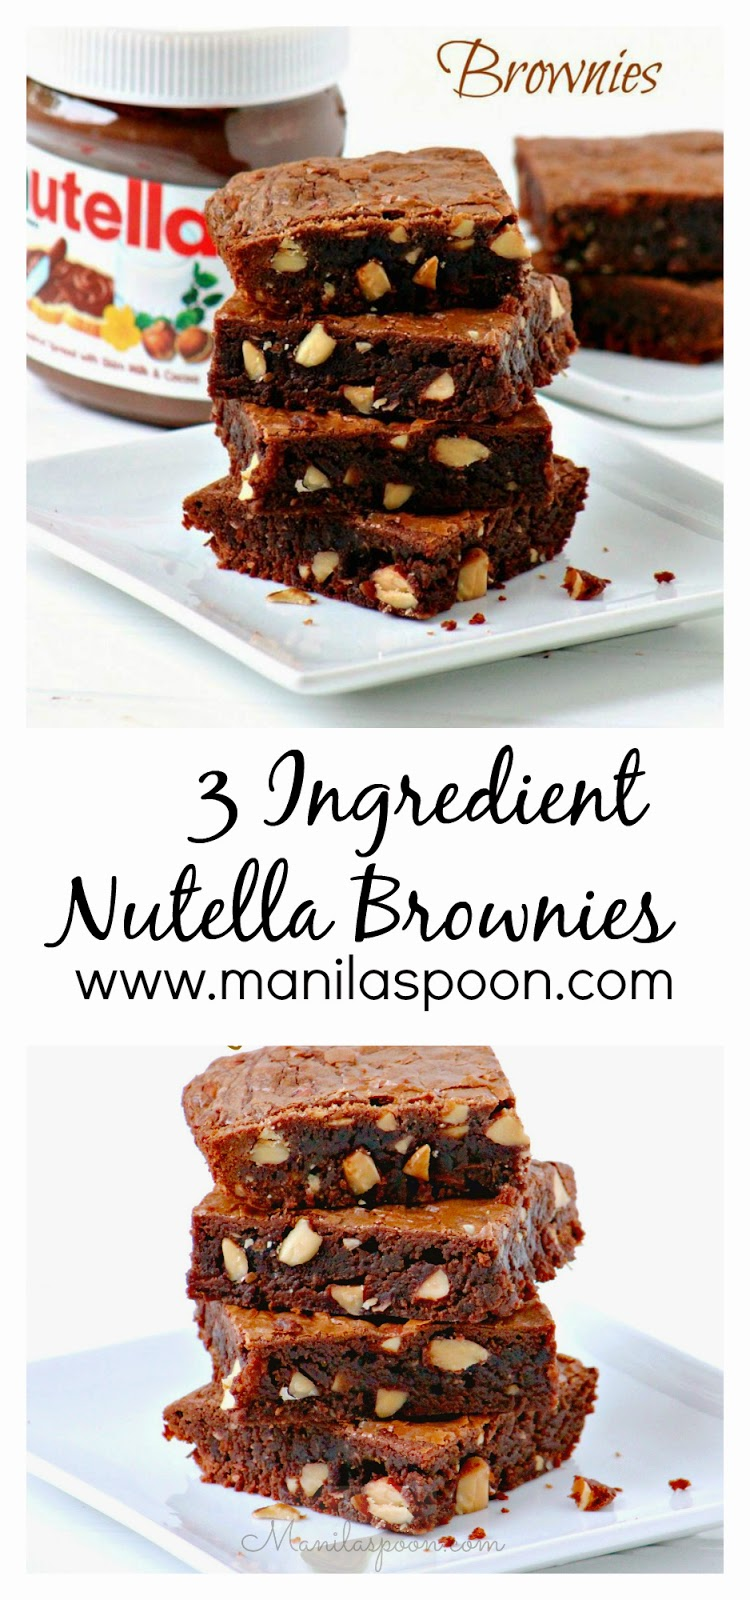 Fudgy, nutty, yummy - everything I love in a brownie - 3-INGREDIENT NUTELLA BROWNIES! GLUTEN-FREE and all-purpose flour options for you to choose from. #nutella #brownies #3ingredients #glutenfree